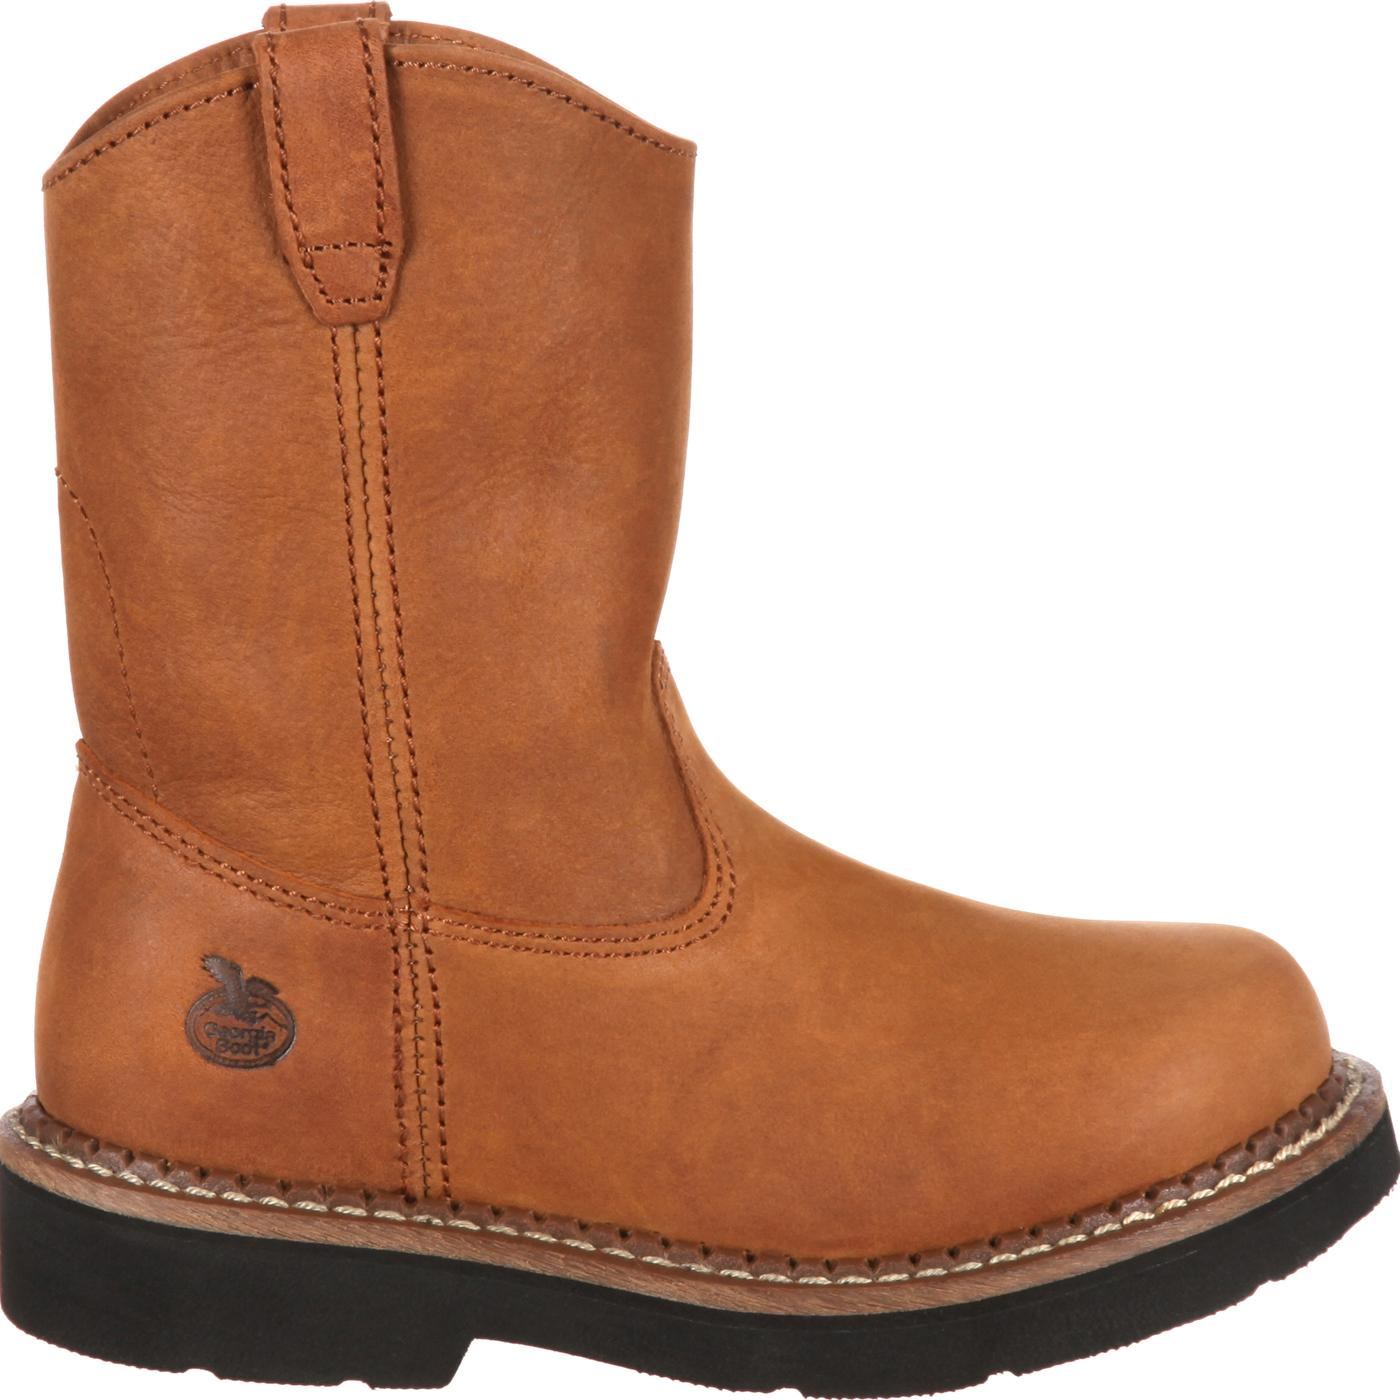 Childrens Brown Pull On Boots Georgia Boot Style Gb202 Inside Wedges Johanna Black Kids Wellington